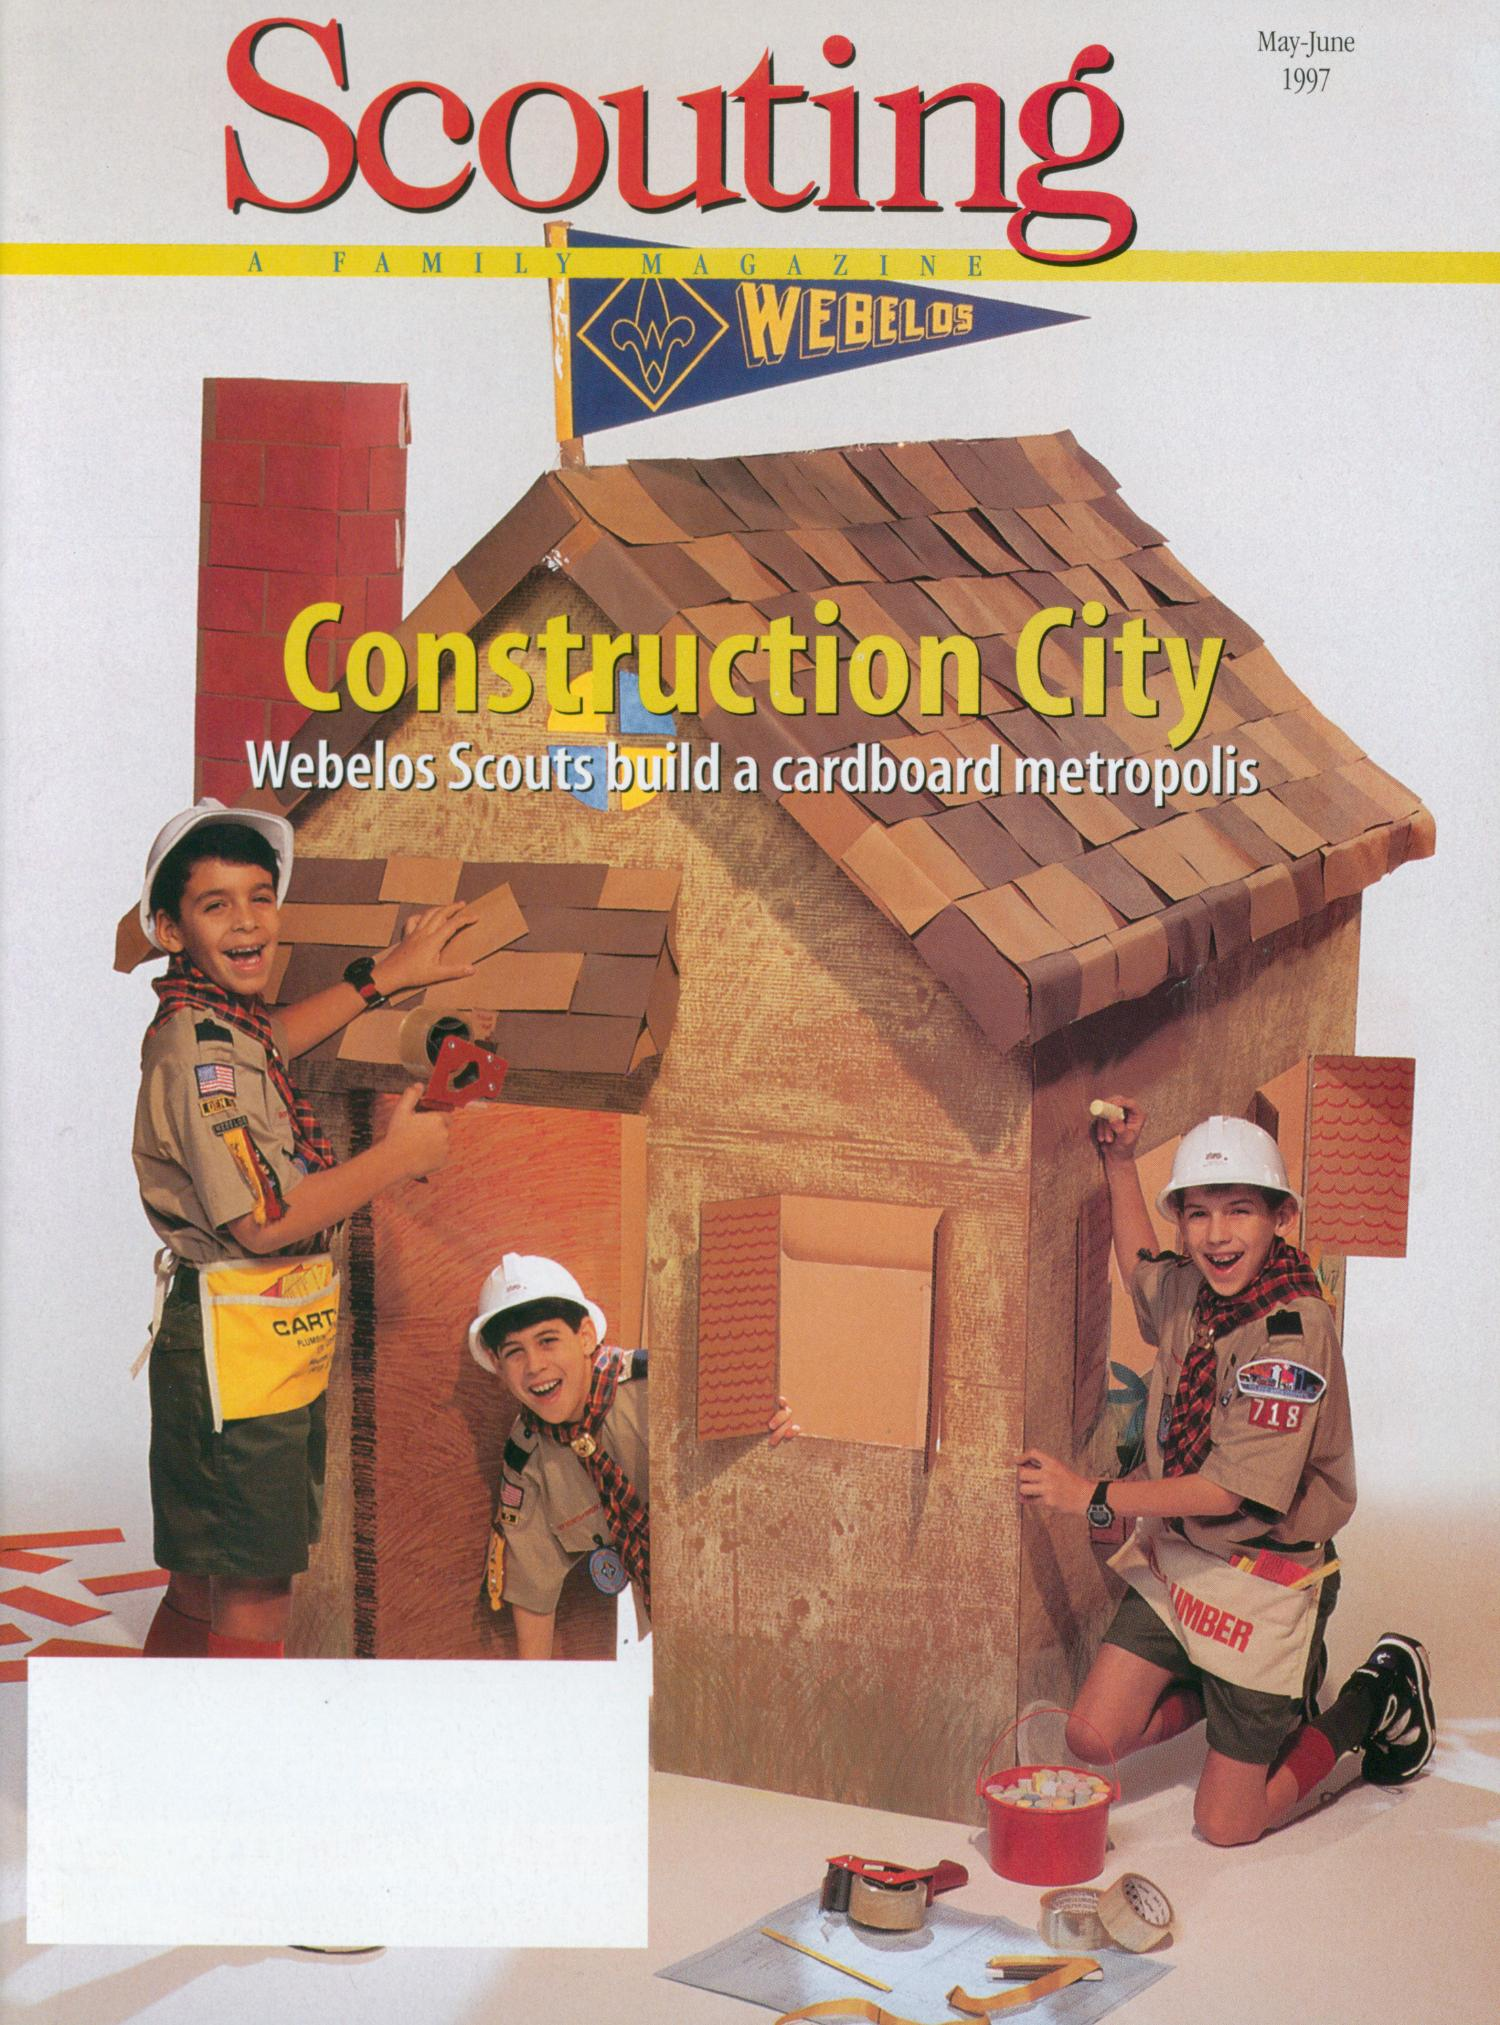 Scouting, Volume 85, Number 3, May-June 1997                                                                                                      Front Cover